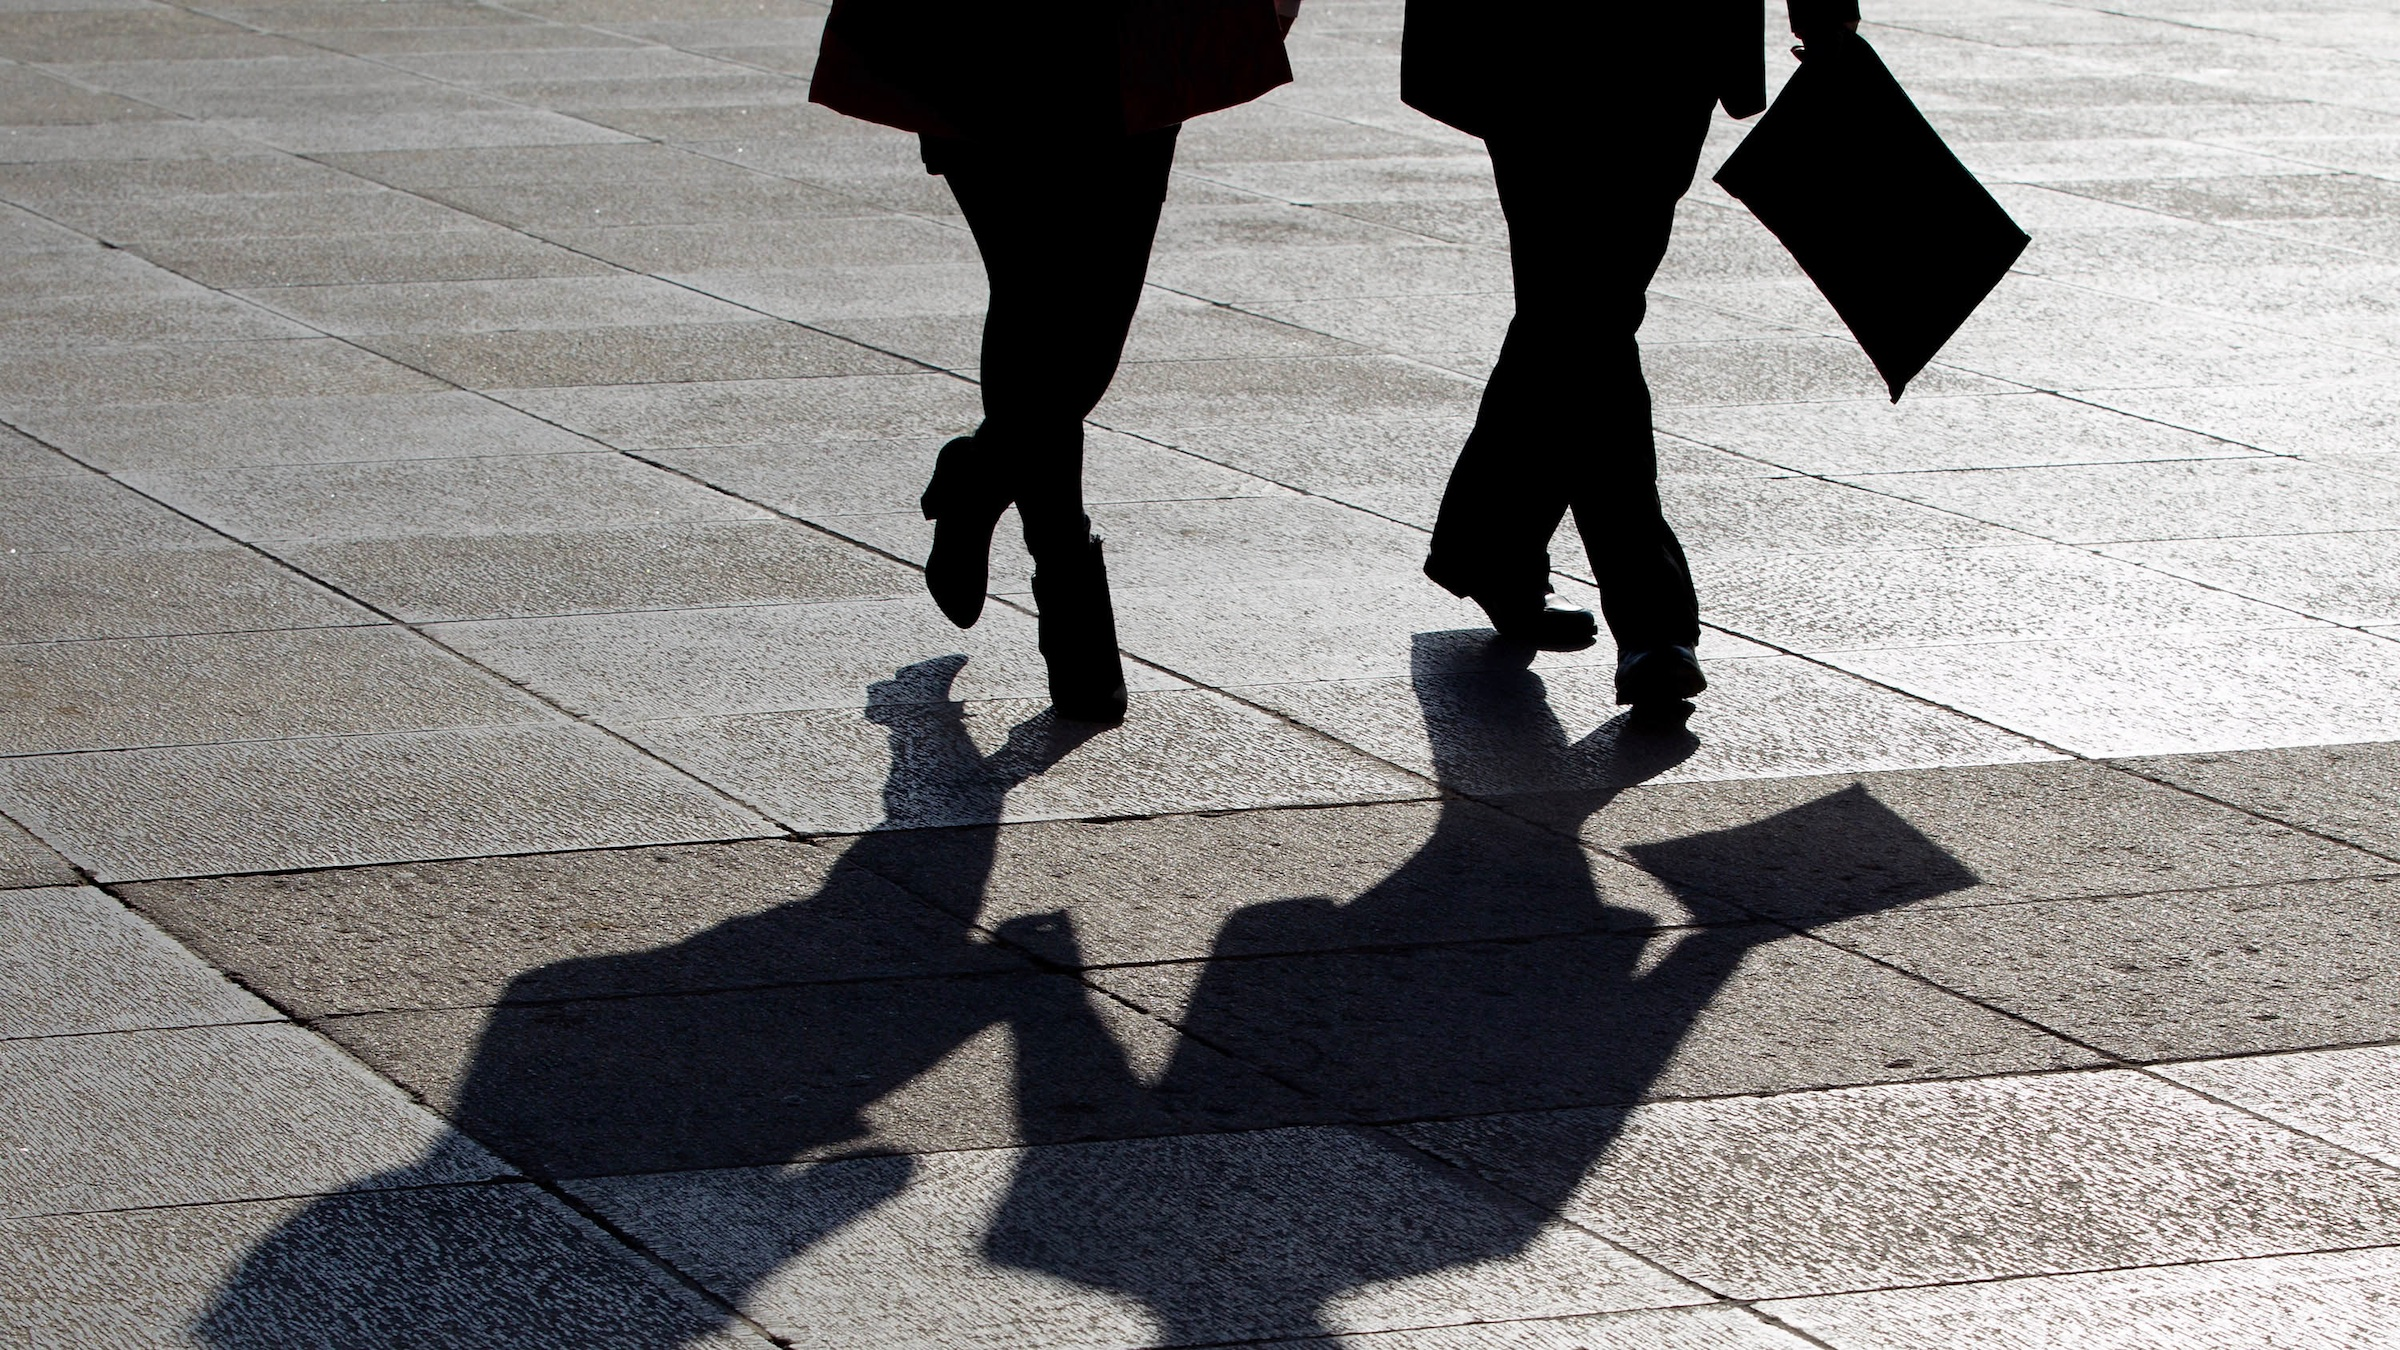 Delegates cast their shadow on the floor as they arrives to attend a plenary session of the National People's Congress held at the Great Hall of the People in Beijing Sunday, March 10, 2013. During the session, the Cabinet unveiled its plan to streamline government ministries, doing away with the powerful Railways Ministry and creating a super-agency to regulate the media and realigning other bureaucracies in a bid to boost efficiency. (AP Photo/Andy Wong)